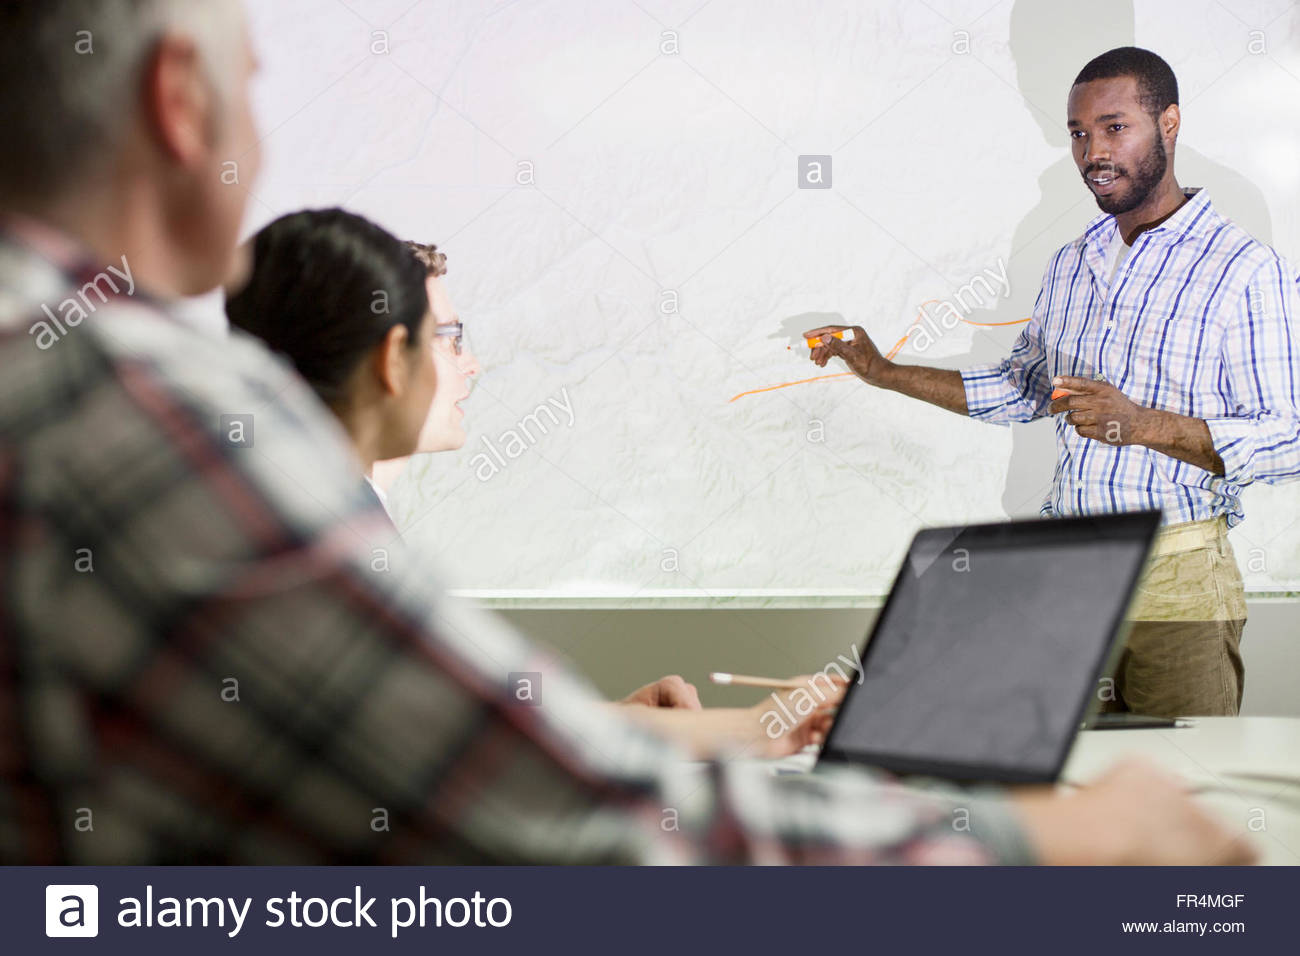 colleague presenting on whiteboard to coworkers - Stock Image